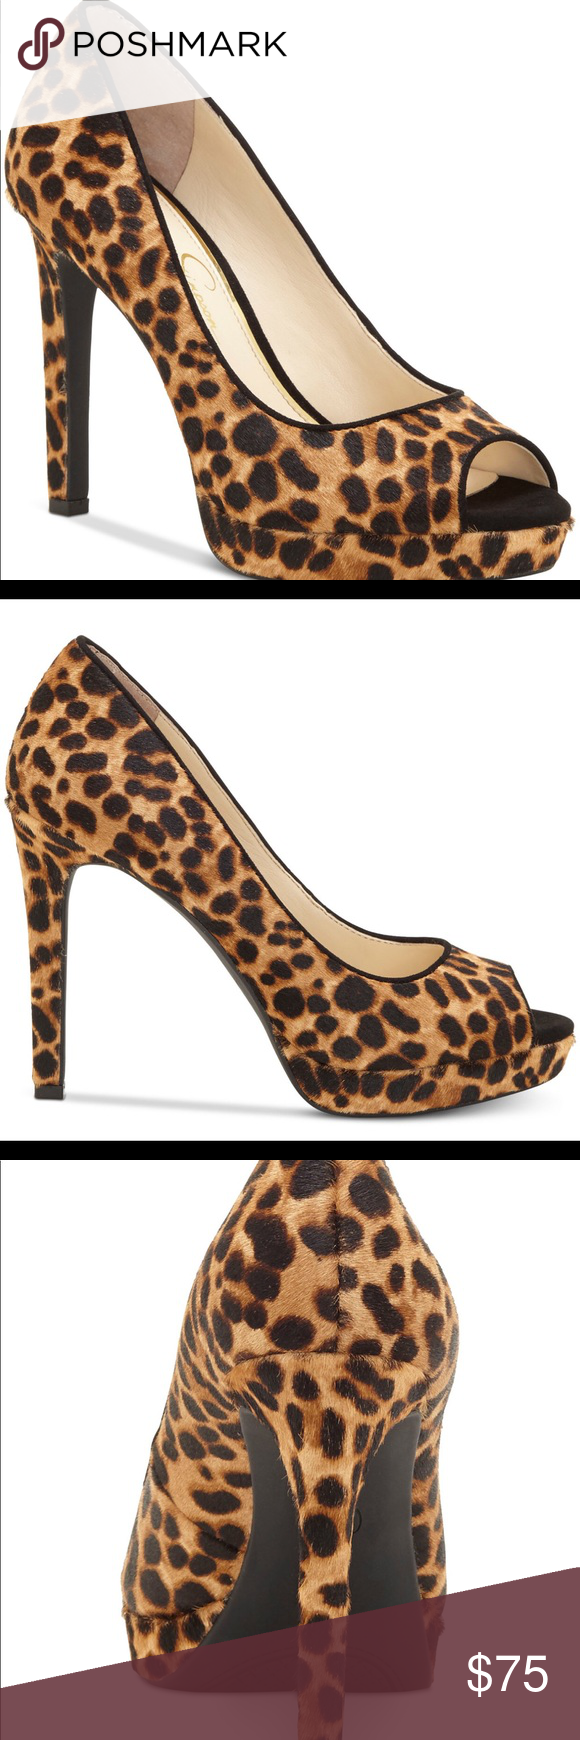 15defde6dd New Jessica Simpson Peep Toe Pumps These shoes have a gorgeous animal print  finis and will surely put the finishing touch on any look, Jessica Simpson's  ...